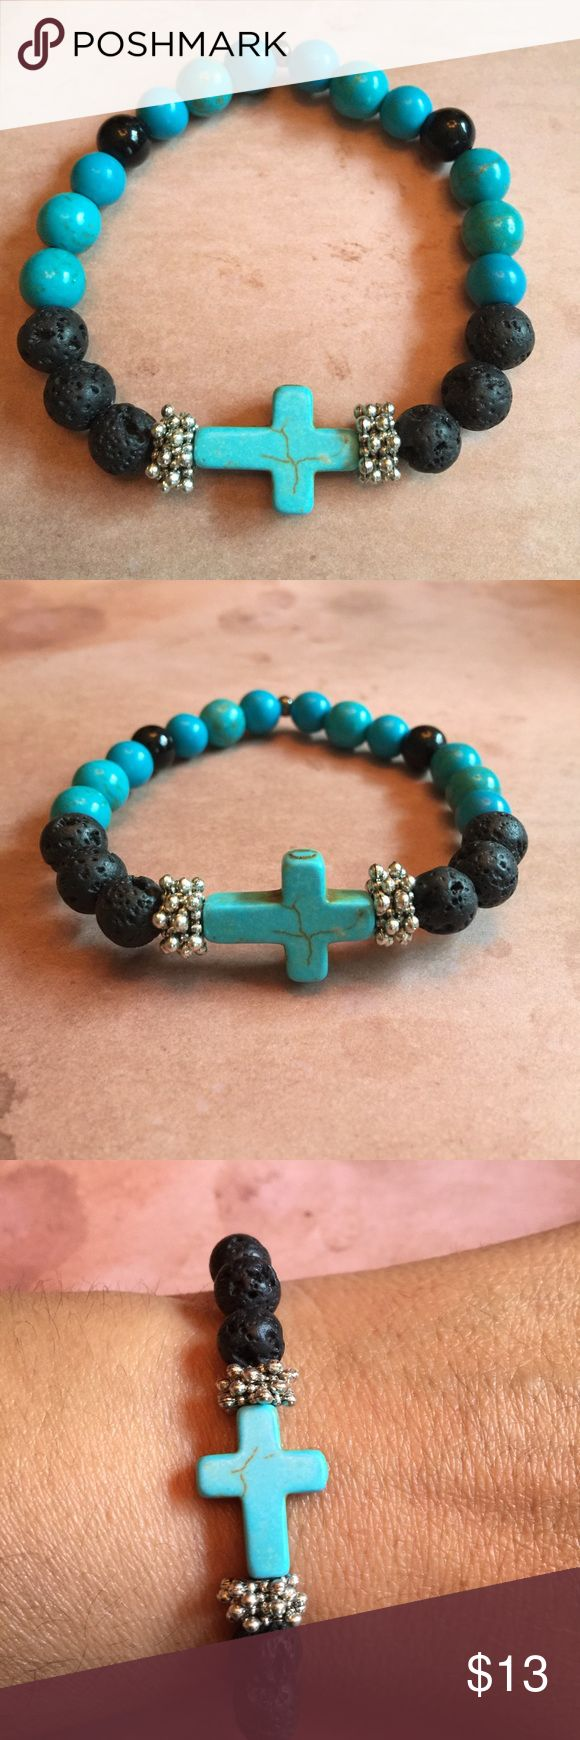 Aromatherapy Cross Bracelet Aromatherapy Bracelet made with Turquoise Howlite Cross charm, Turquoise Howlite beads, Lava stone and Natural beads, Use with your favorite Essential Oils. Apply a couple of drops to Lava Stone, will last up to a couple of days. Comes with Free Gift. Jewelry Bracelets